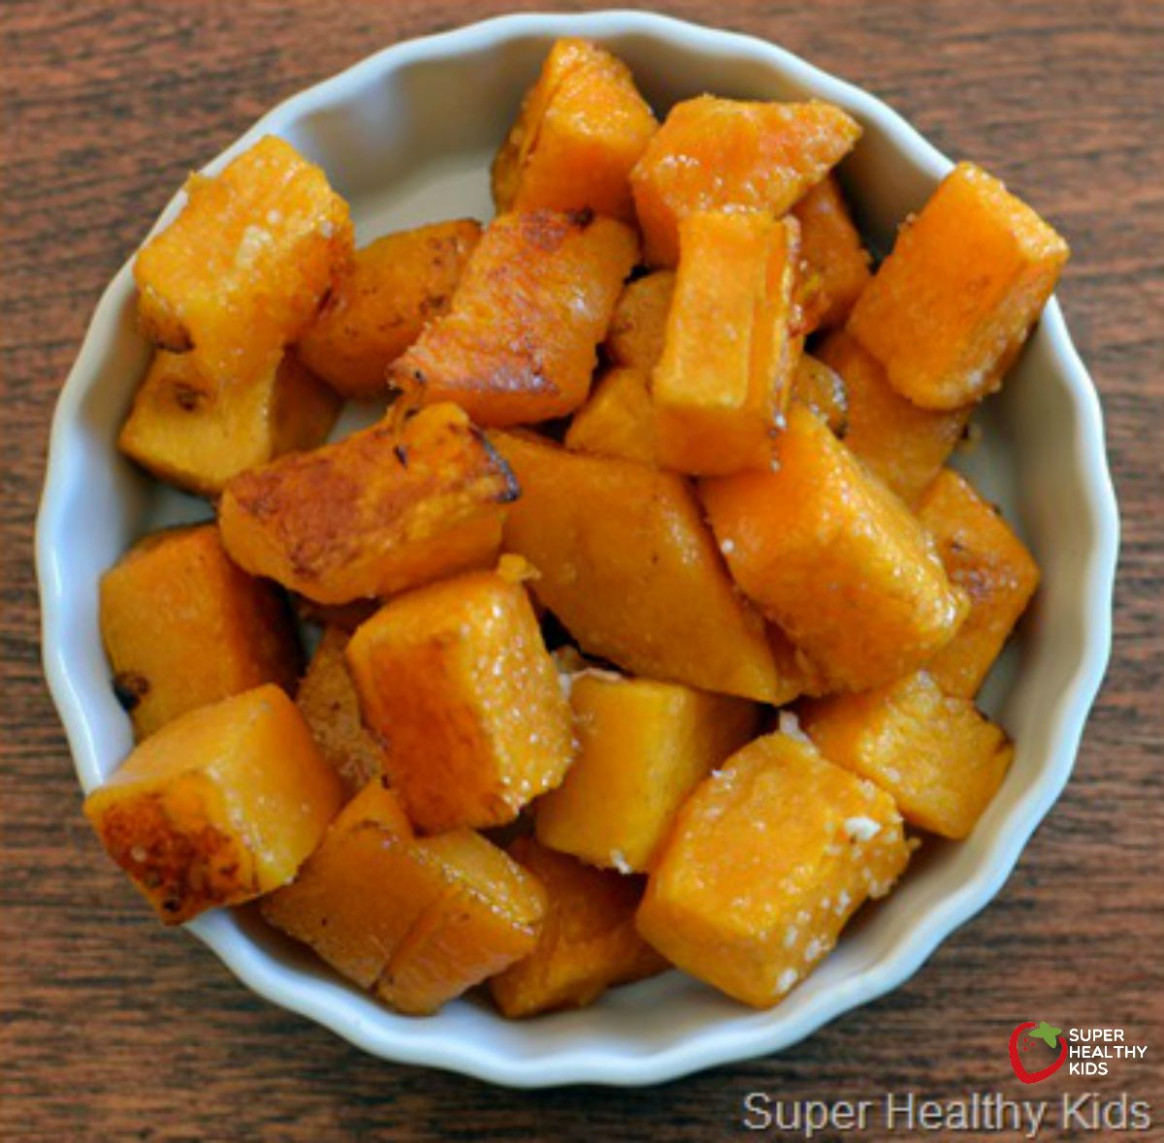 Easy Vegetables: Roasted Butternut Squash Recipe | Healthy ...